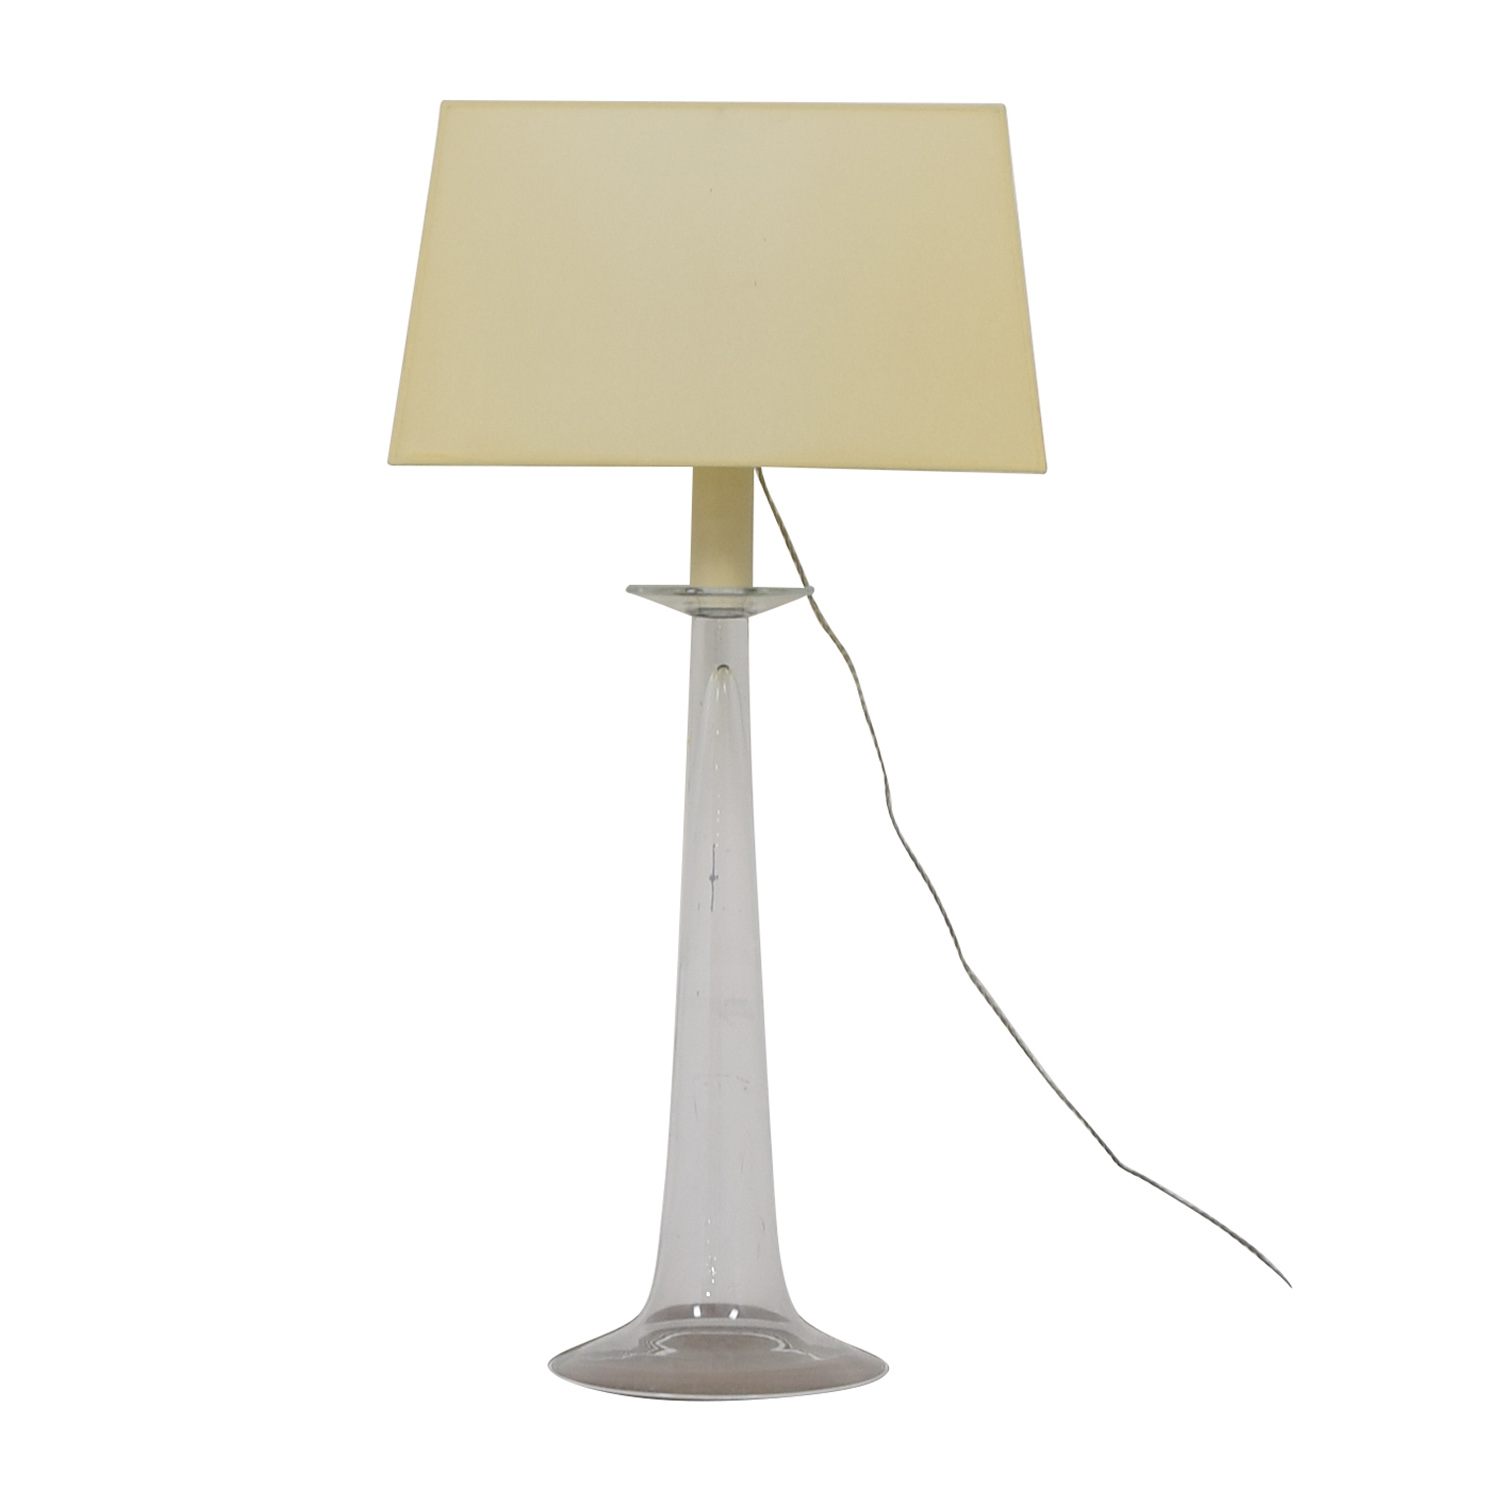 Barbara Cosgrove High Table Lamp / Lamps